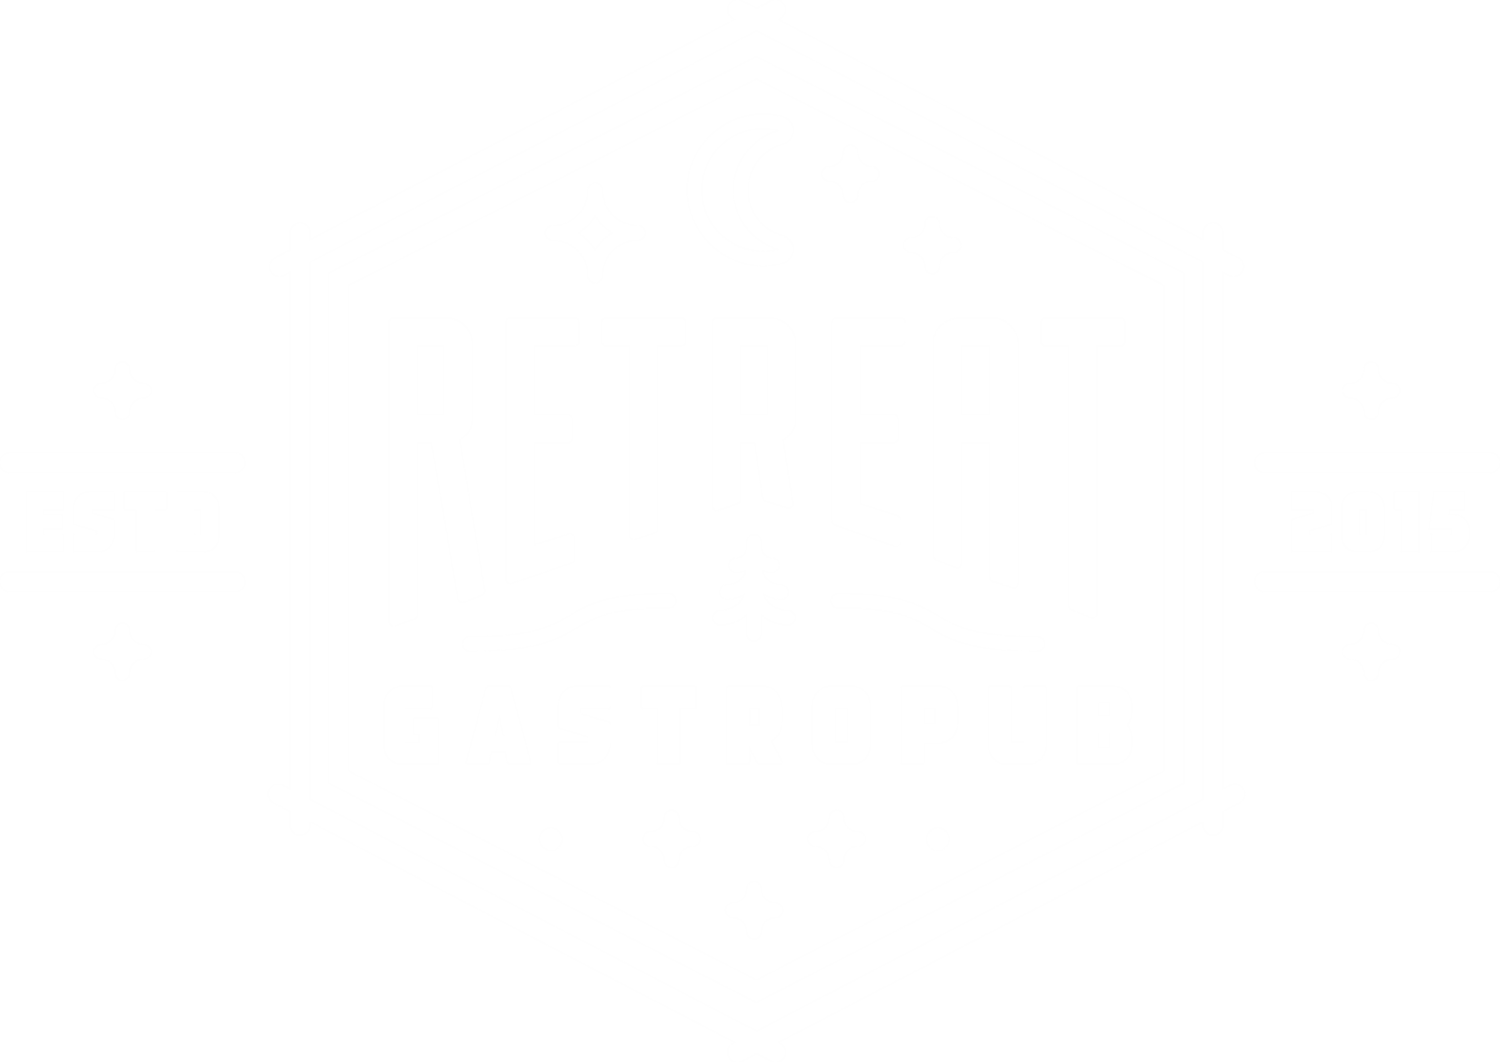 Retreat Gastropub